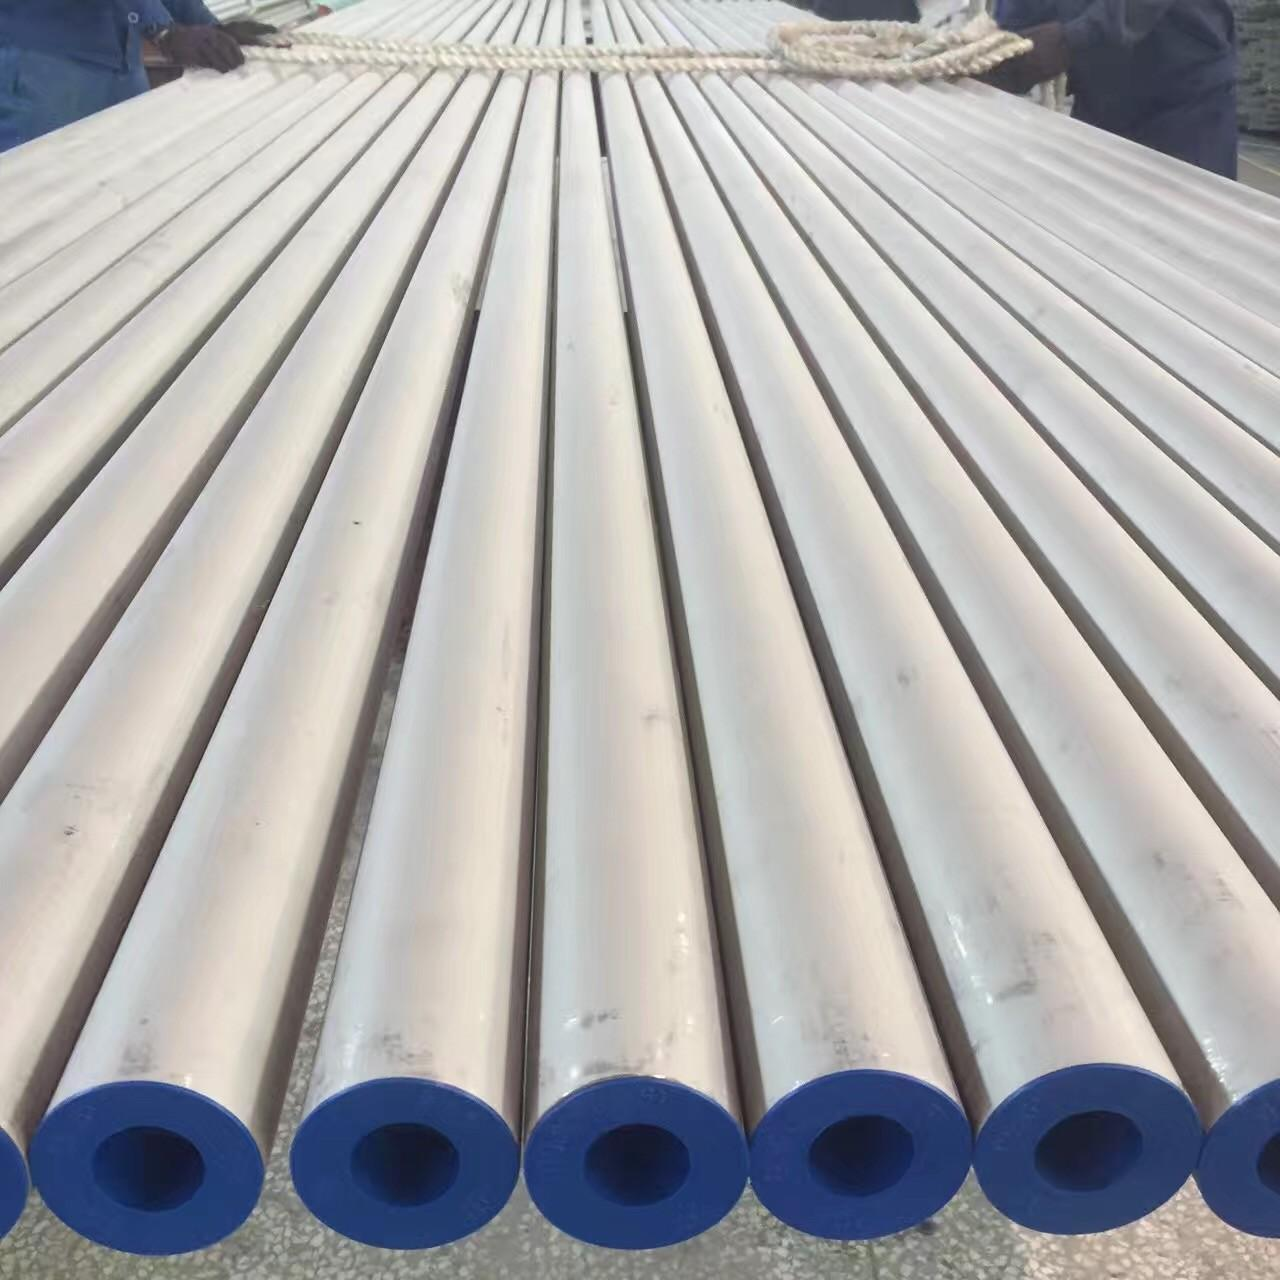 China Stainless Steel Seamless Pipe, EN 10216-5 TC 1 D3/T3 1.4301 (TP304/304L), 1.4404, 1.4571 wholesale